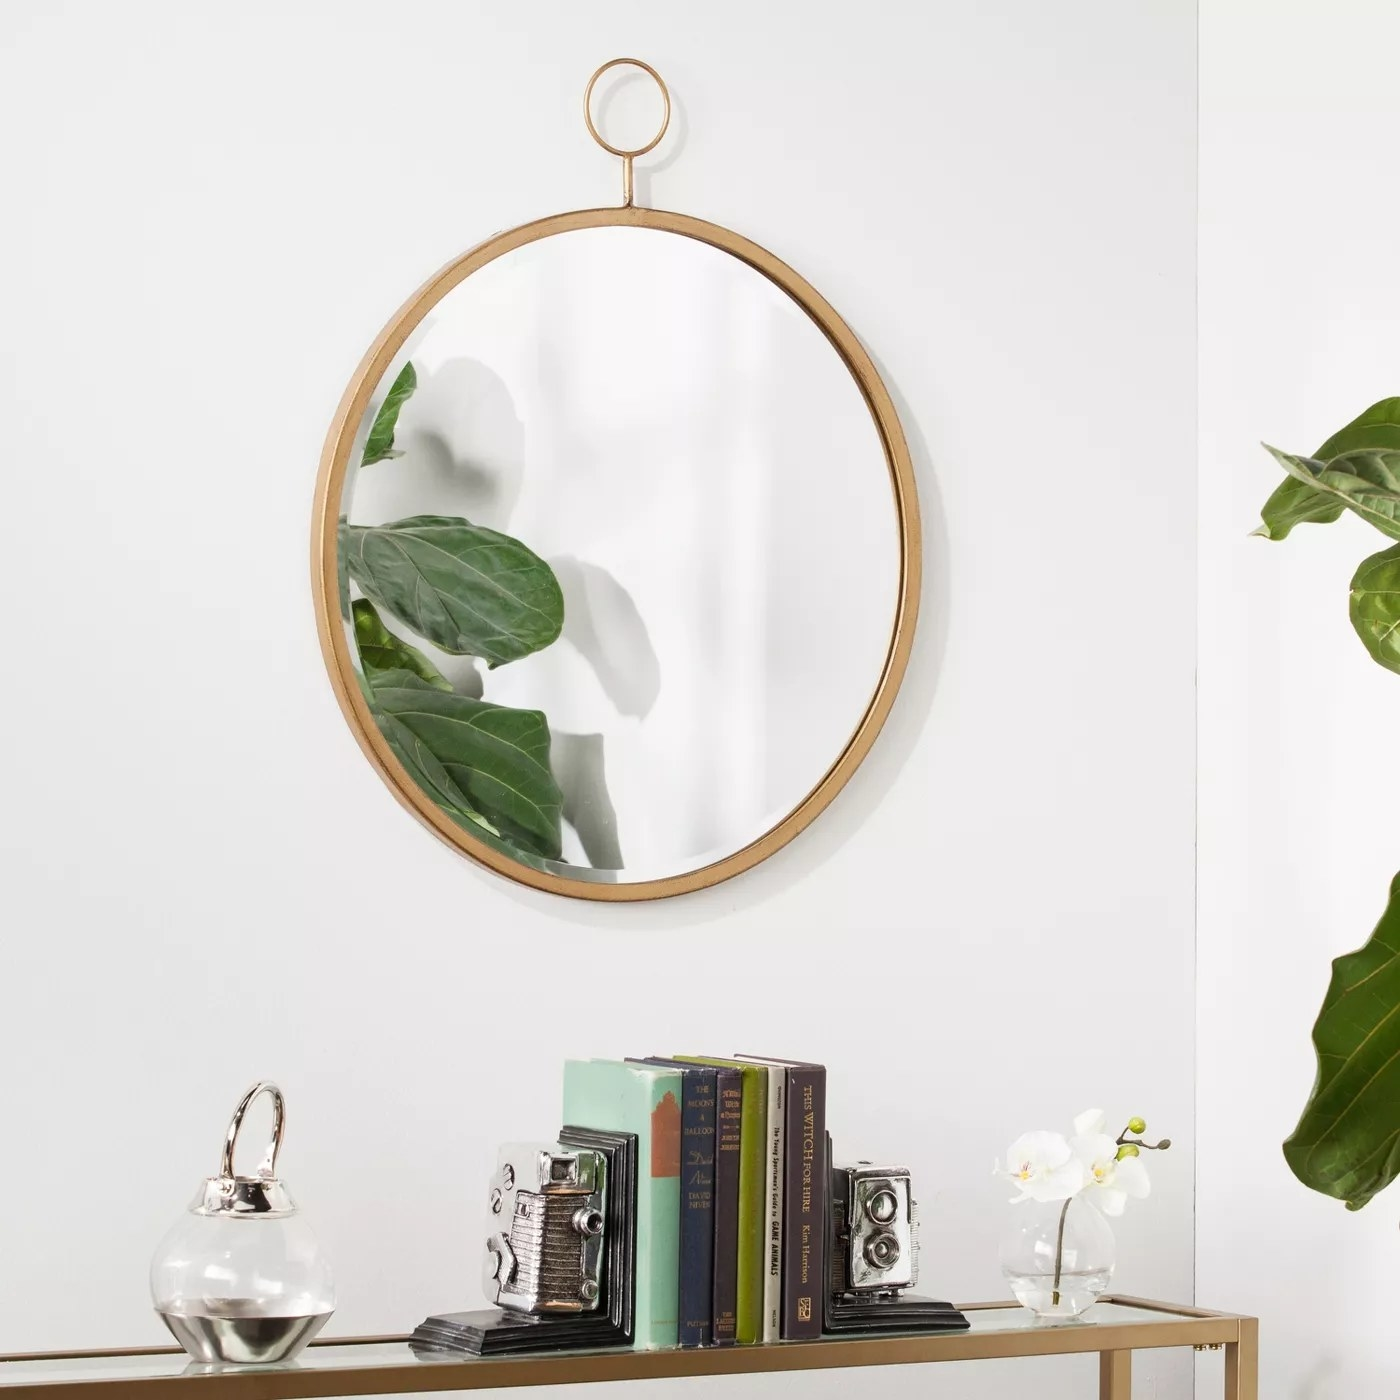 The round mirror with a beveled edge and a brass frame